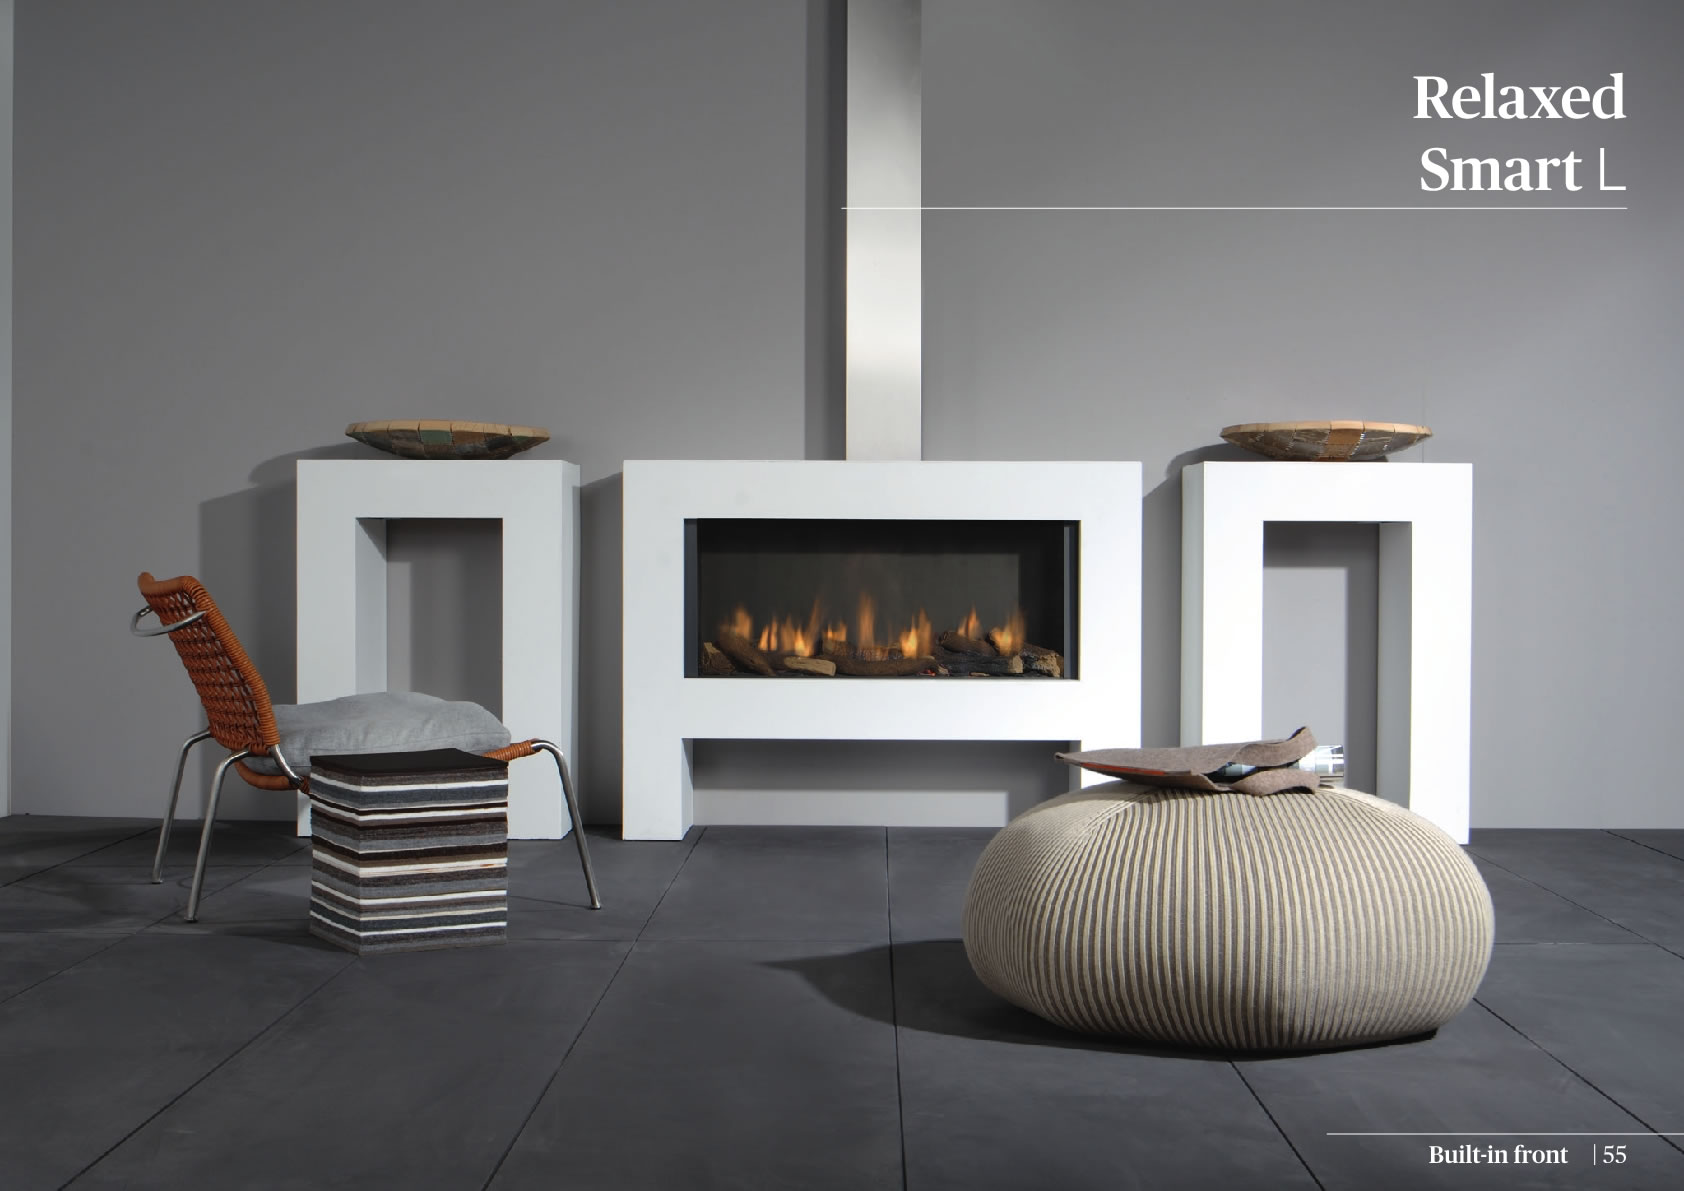 Faber Natural Gas Fireplaces - Relaxed Smart L